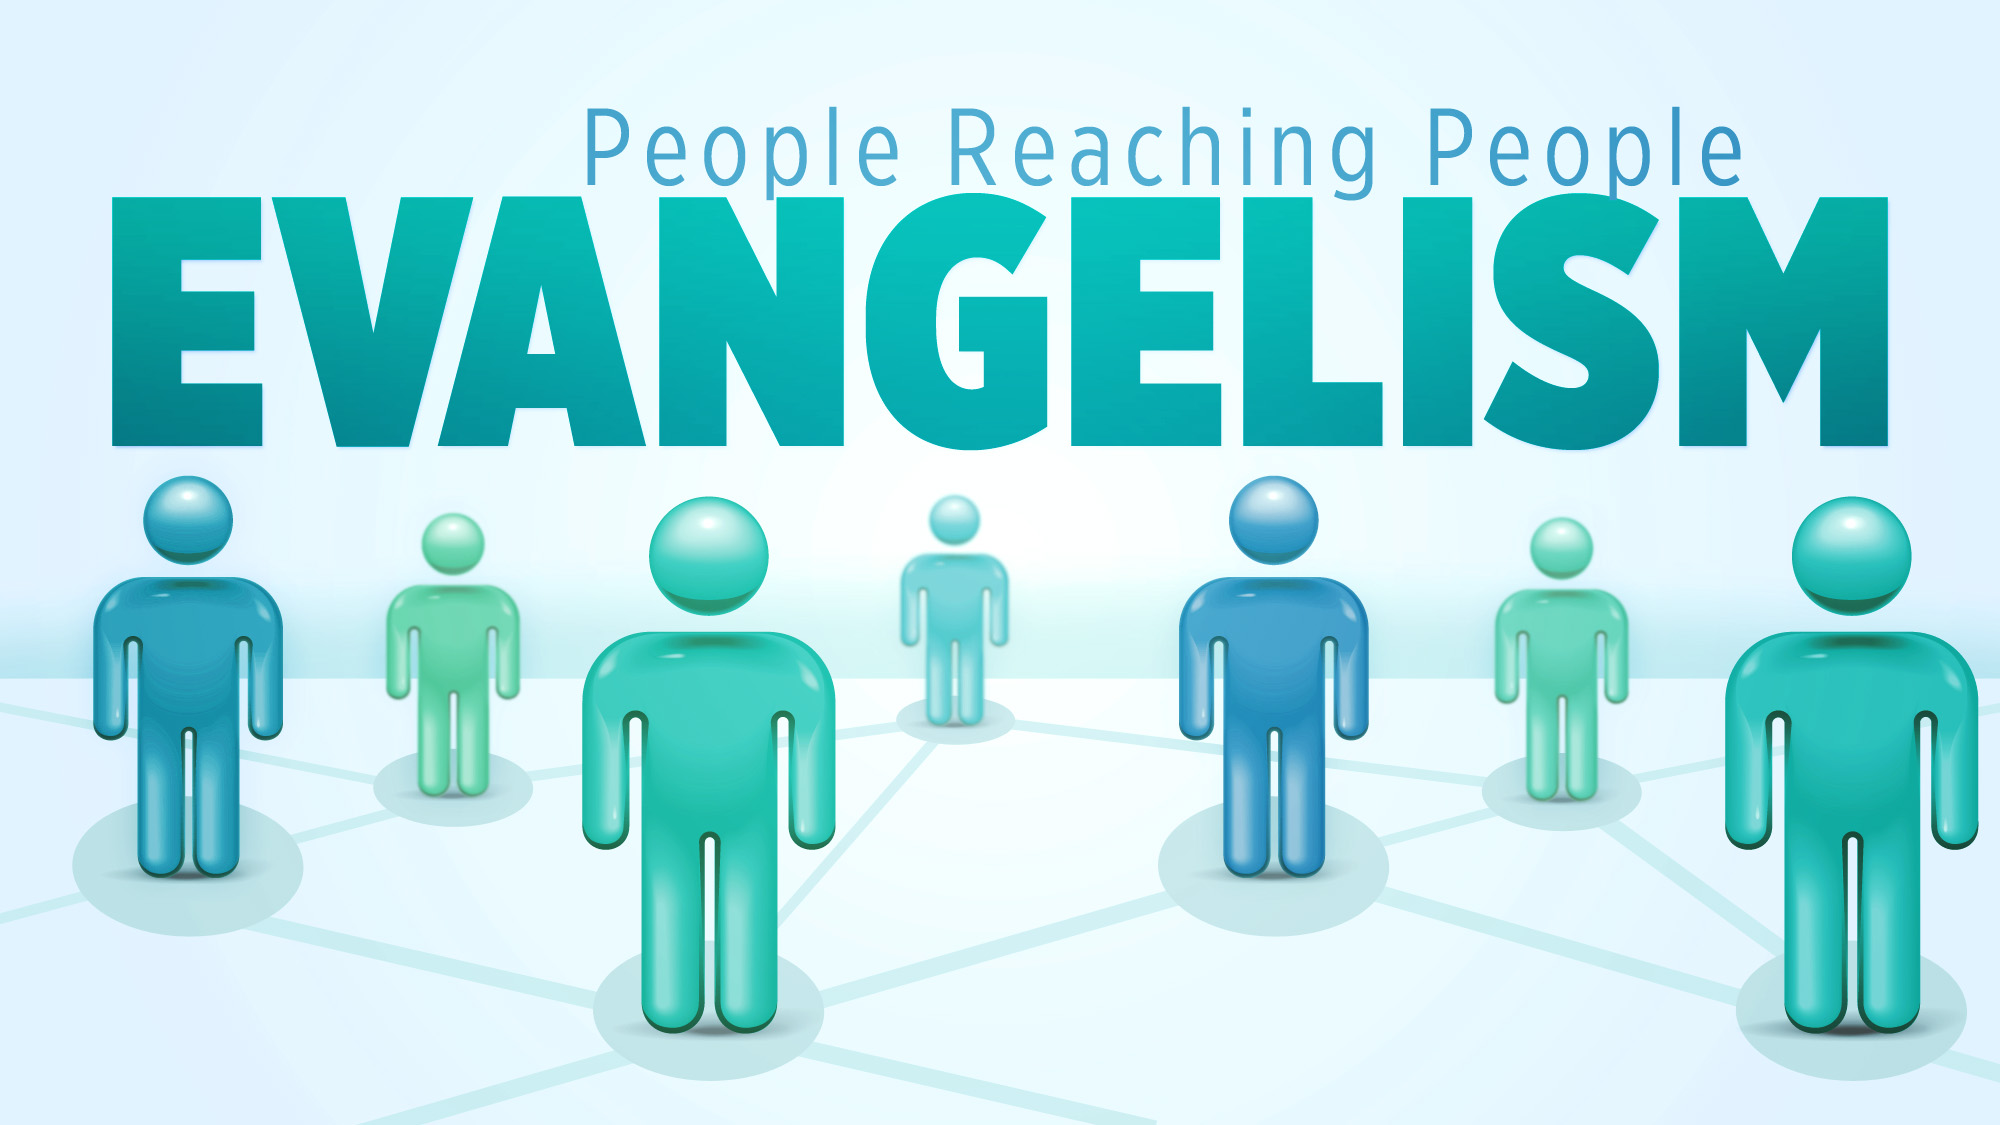 Free Evangelism Cliparts, Download Free Clip Art, Free Clip Art on.